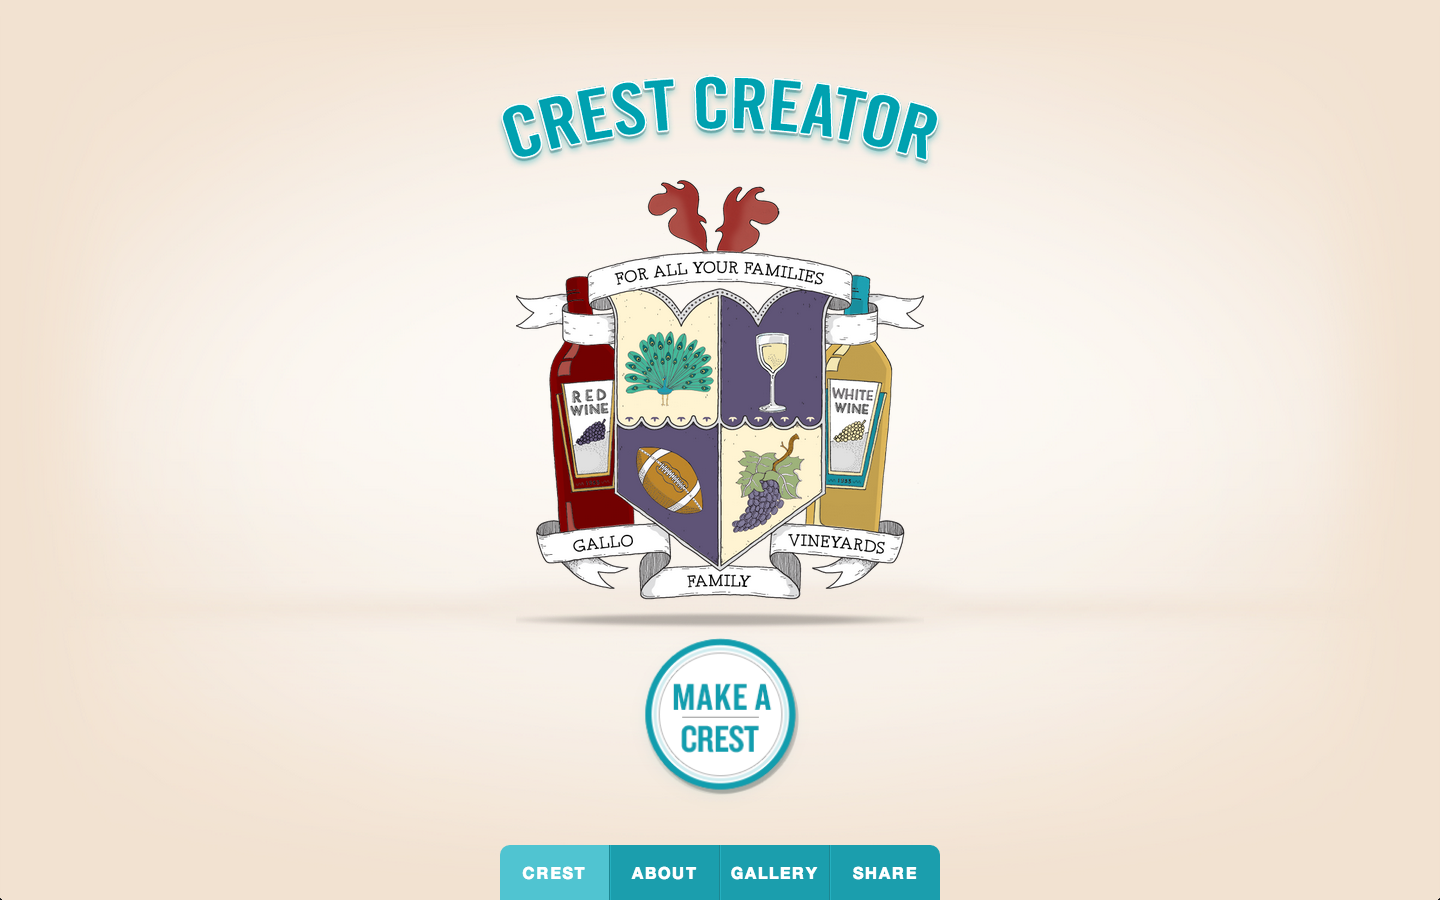 Gallo: Crest Creator